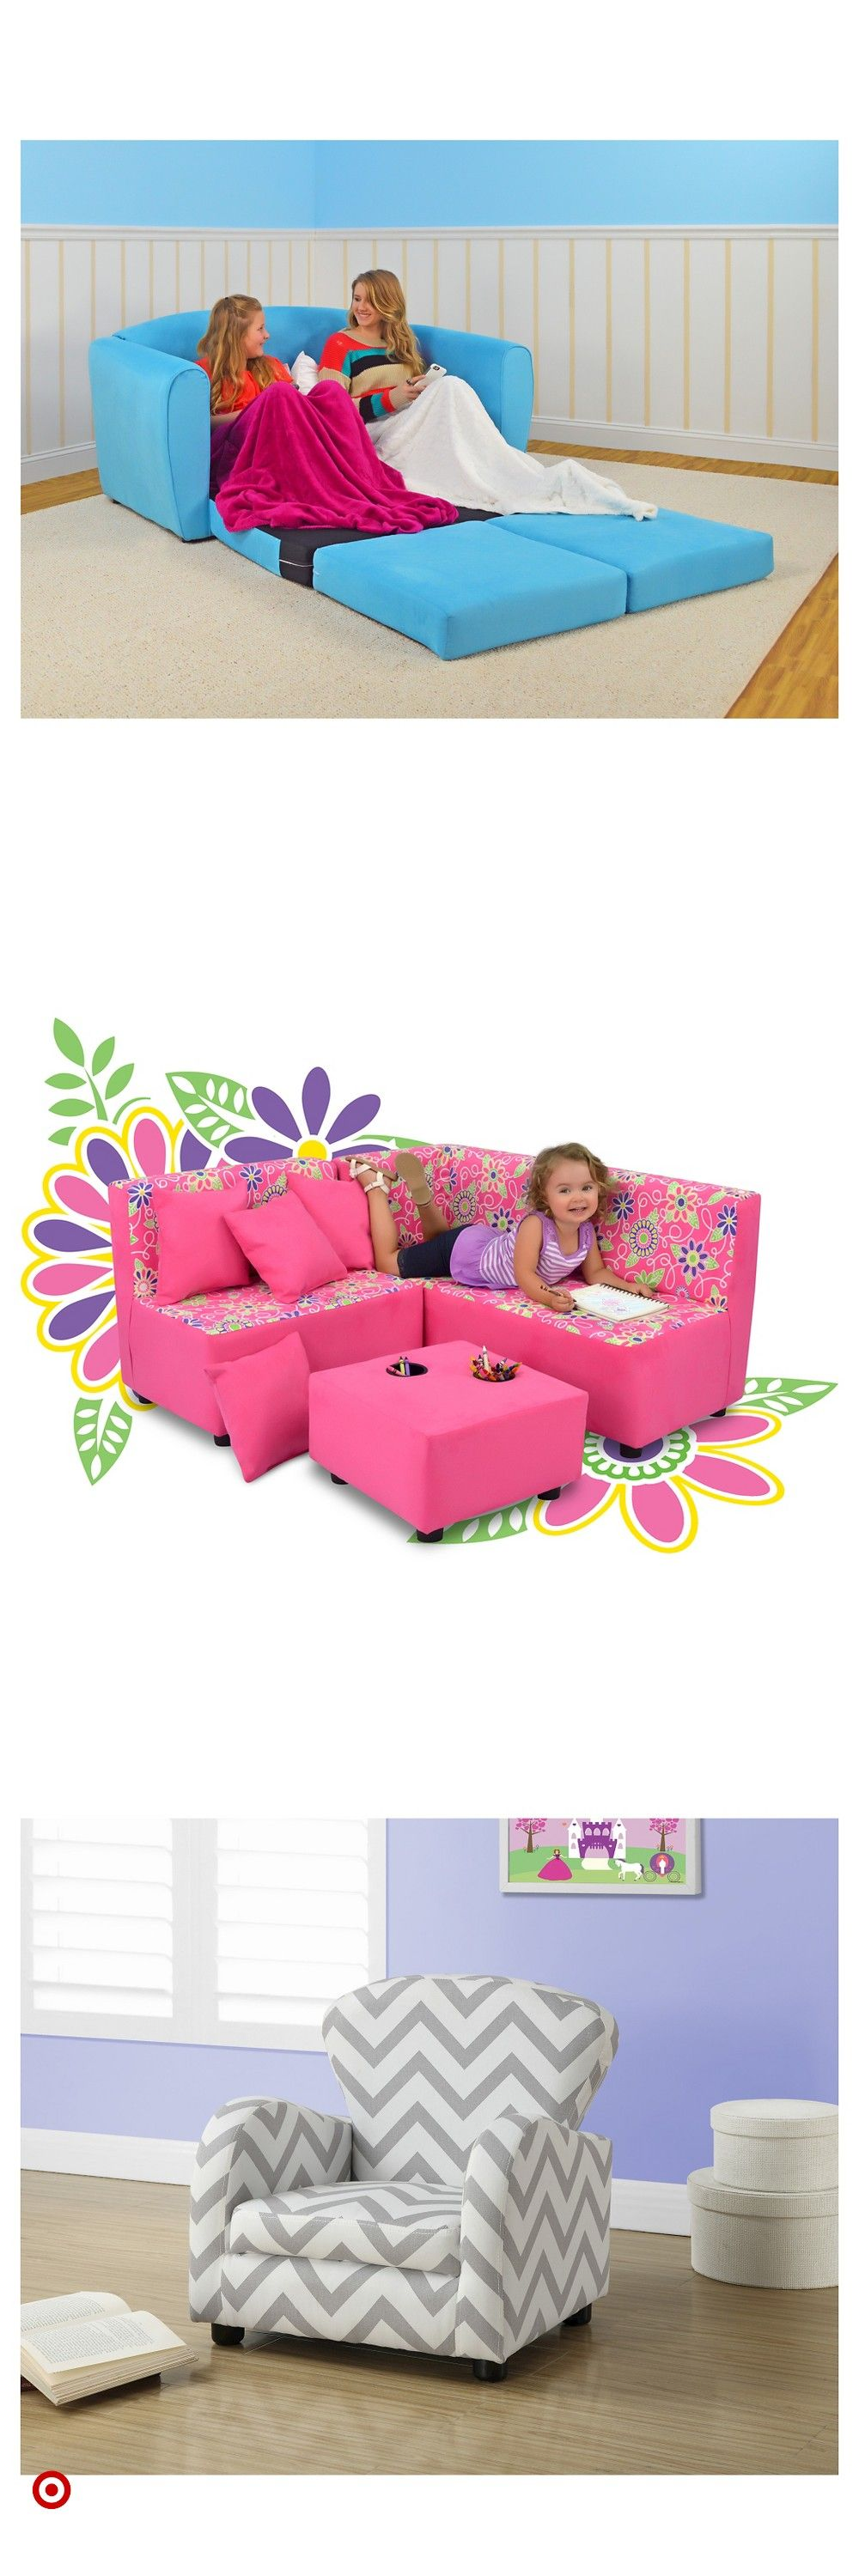 Shop Target For Kids Amp Sofa You Will Love At Great Low